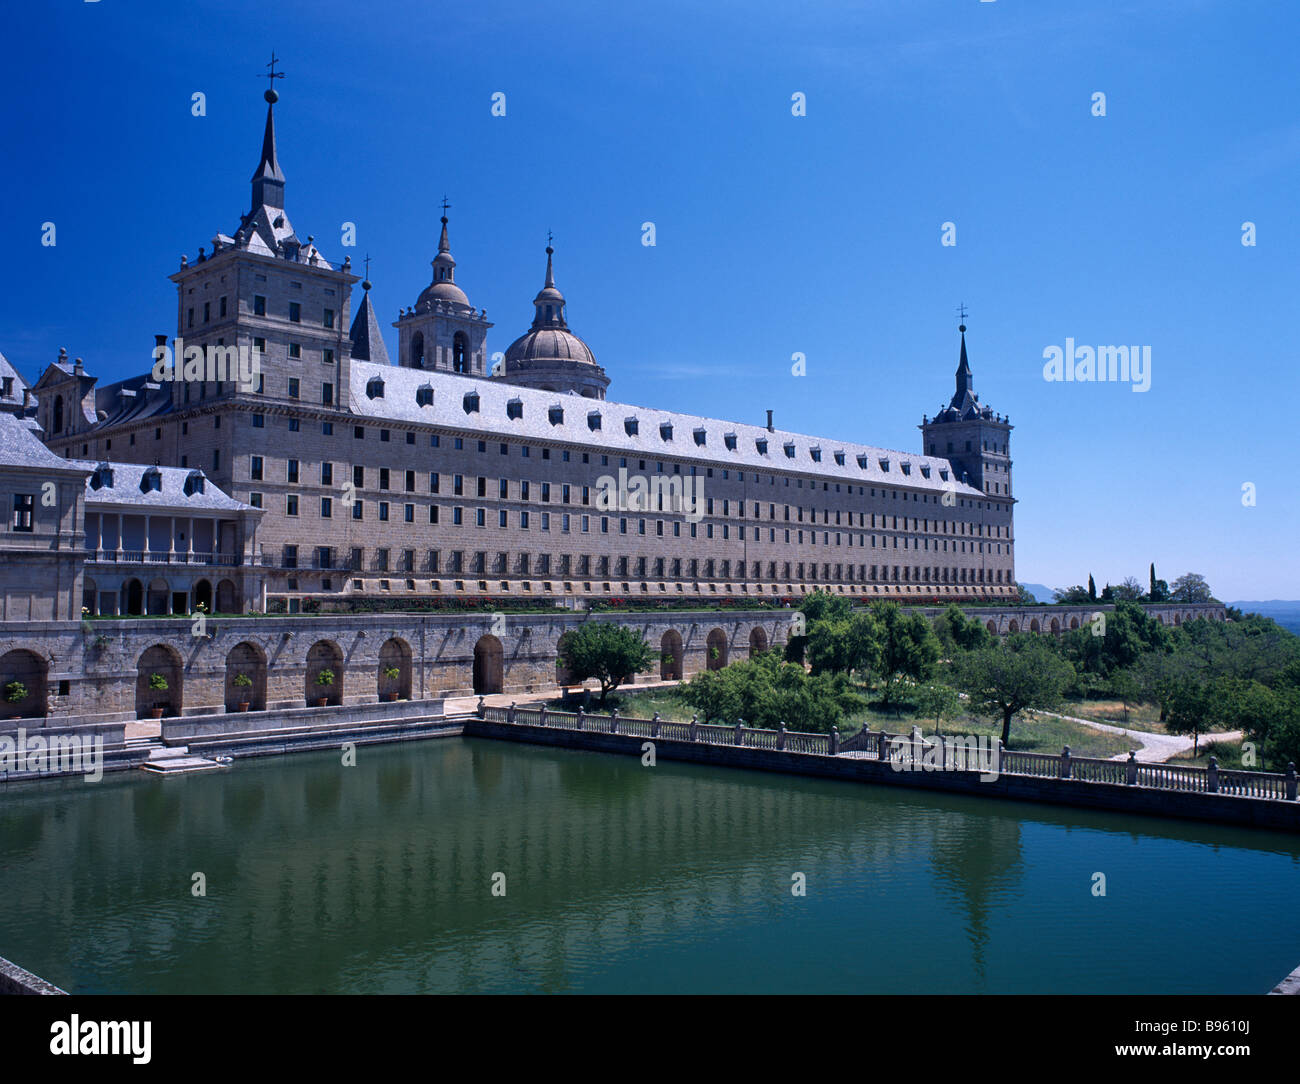 SPAIN Madrid State El Escorial Palace of San Lorenzo de El Escorial seen from the west side with large water pool Stock Photo